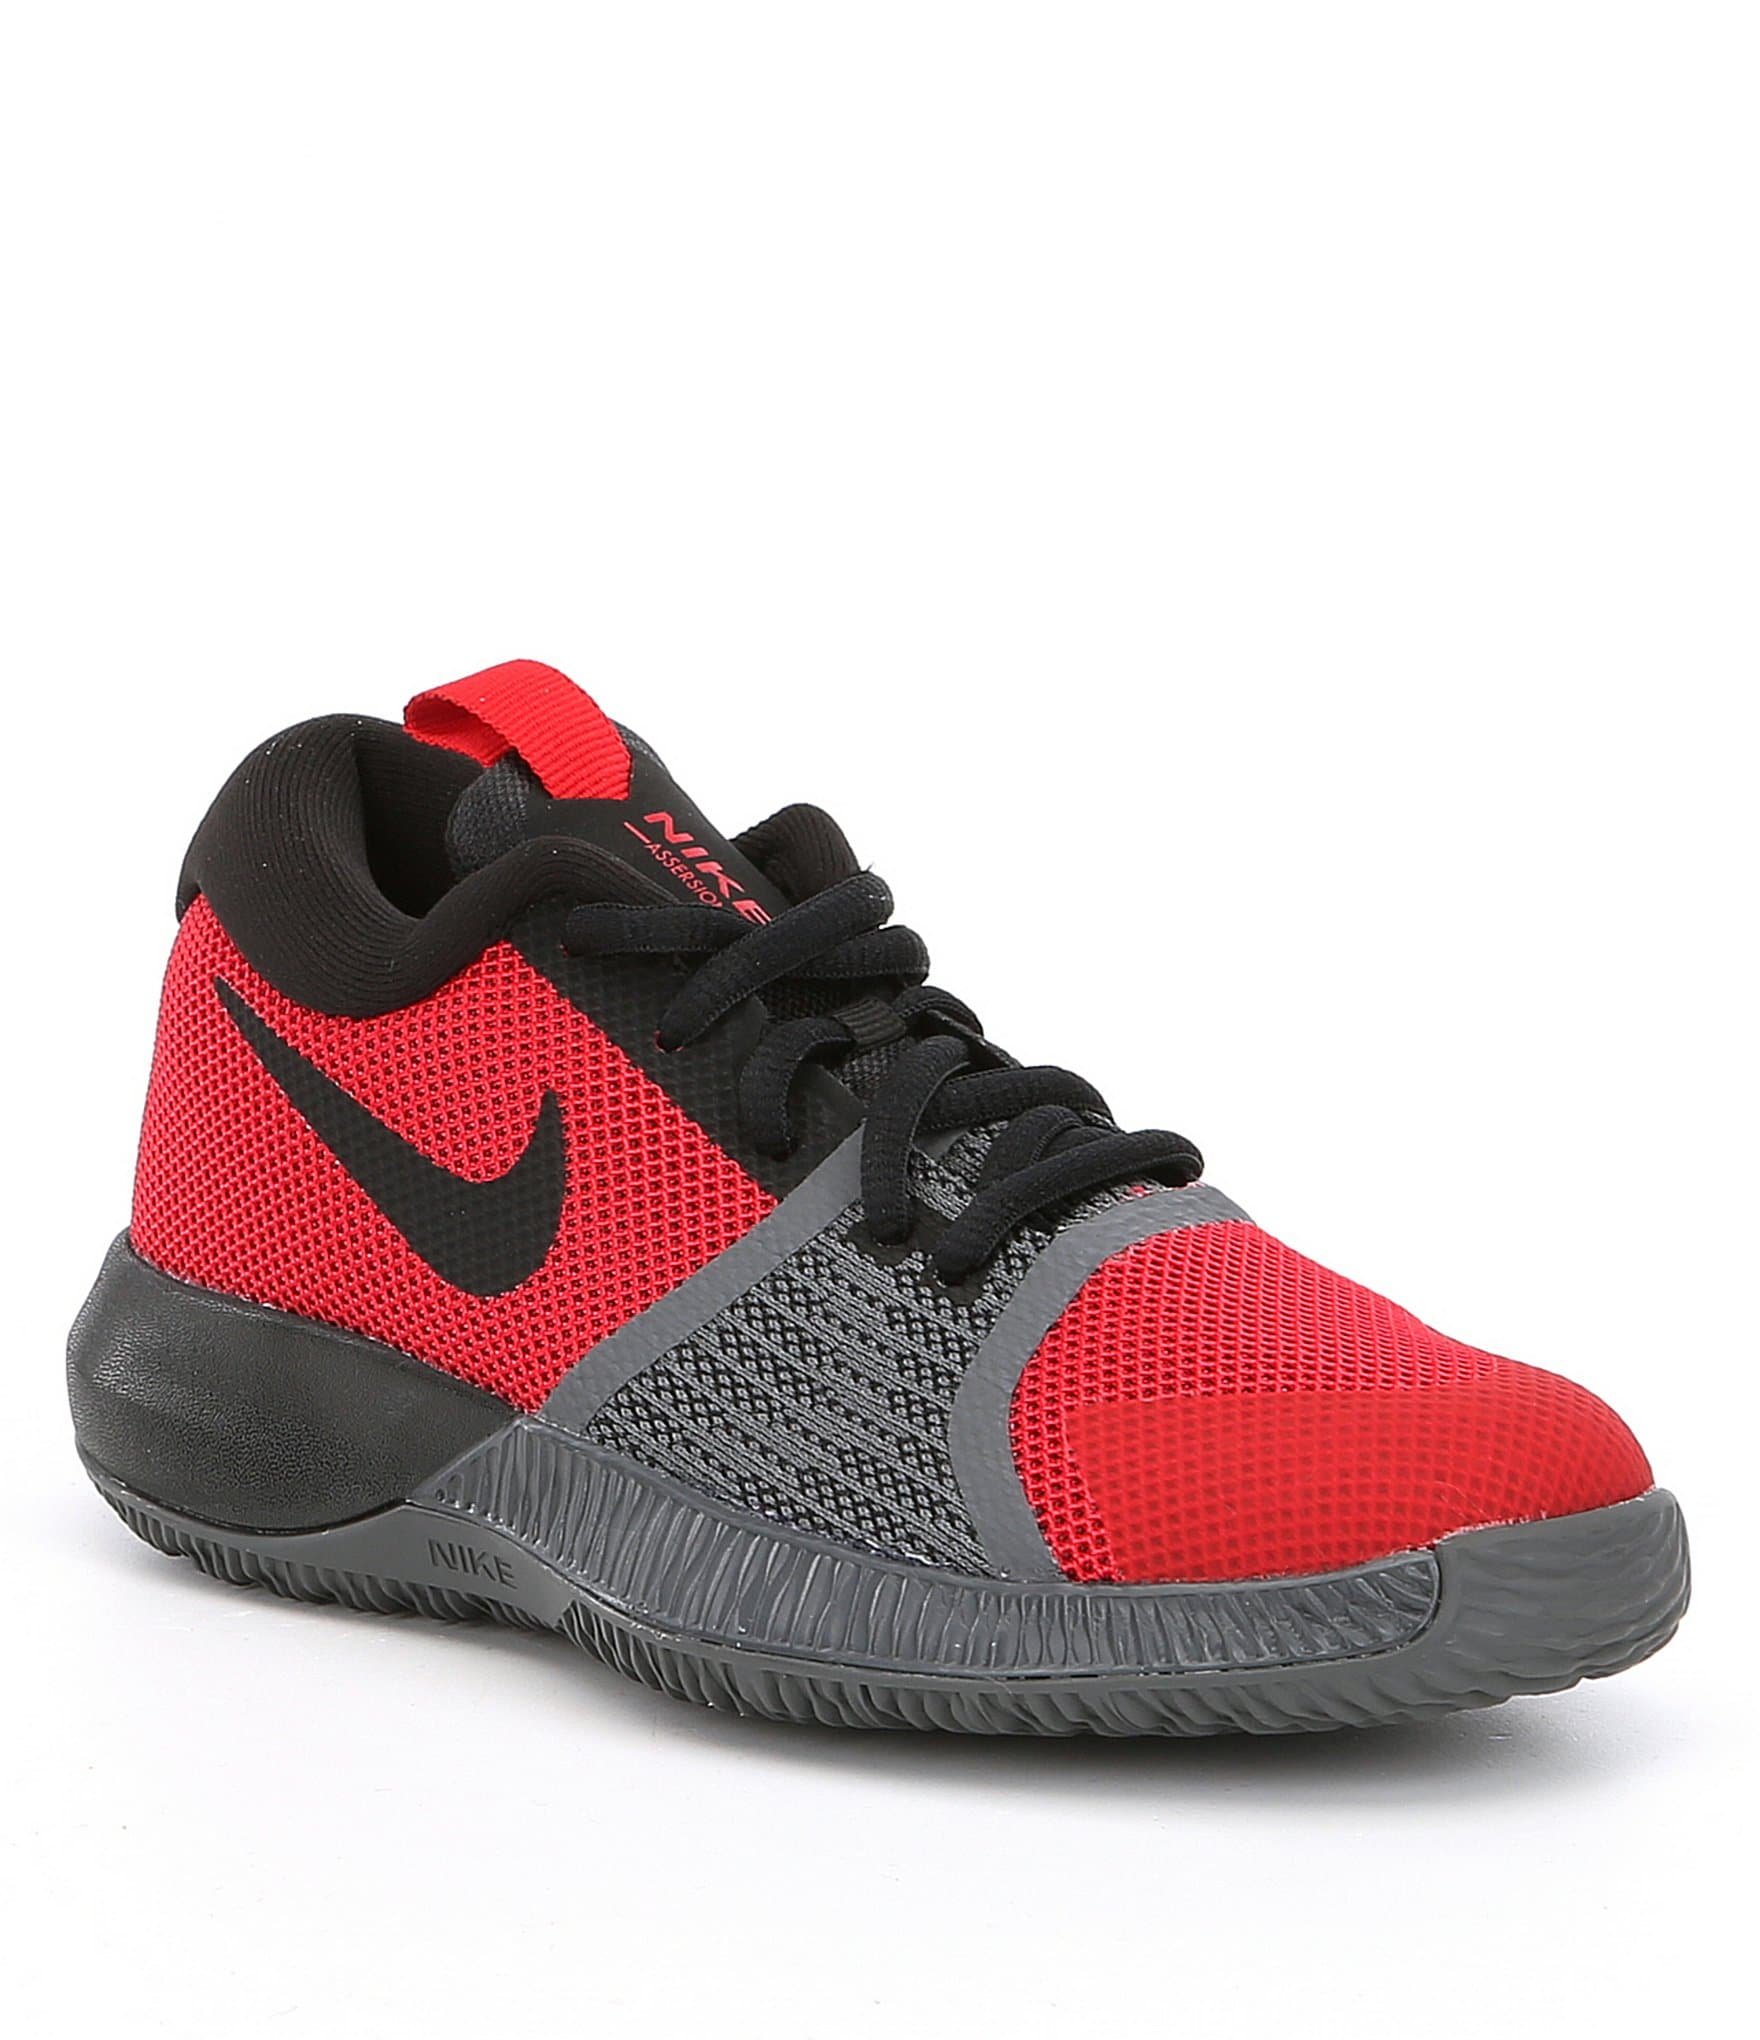 Clearance Nike Basketball Shoes That Are For Boys